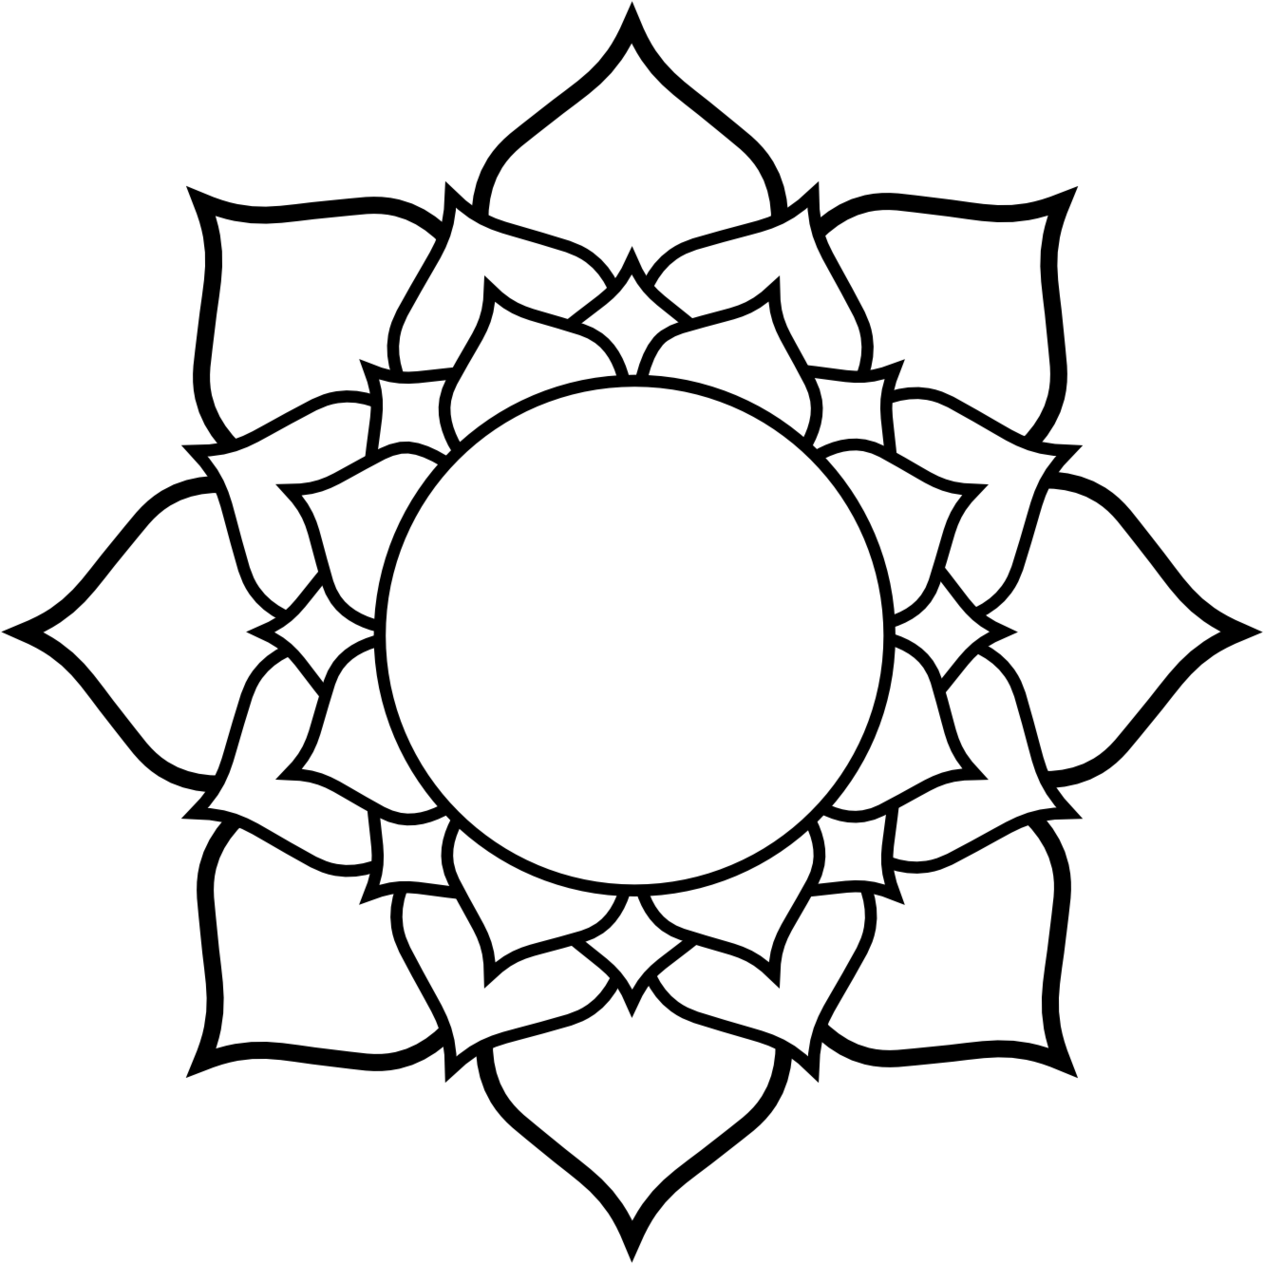 Lotus flowers drawing at getdrawings free for personal use 1264x1264 lotus clipart line drawing izmirmasajfo Images